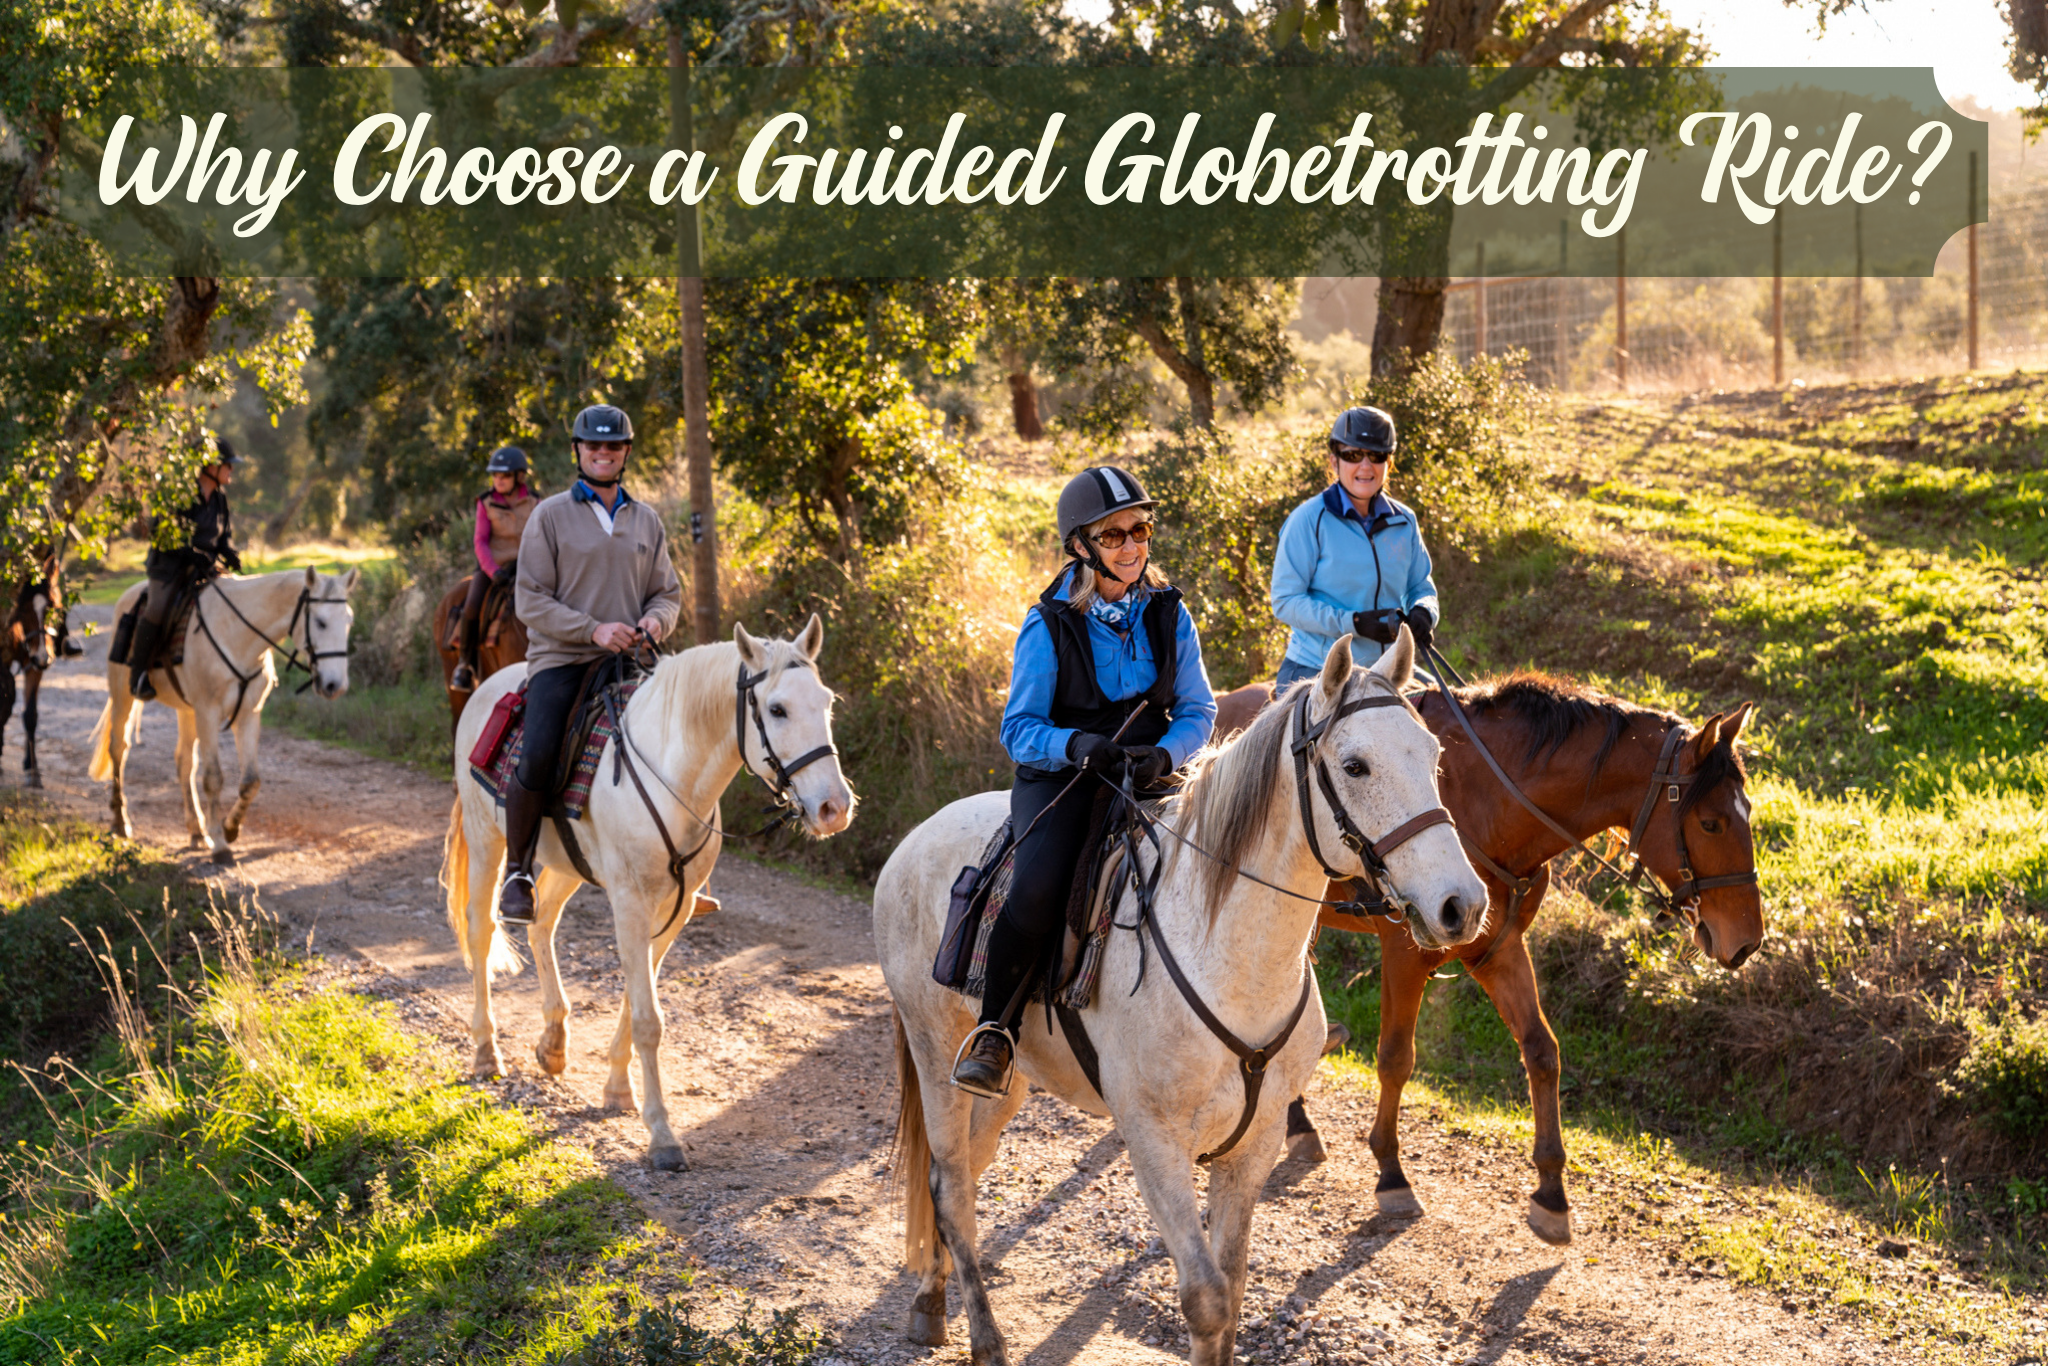 Why choose a guided Globetrotting horse riding holiday